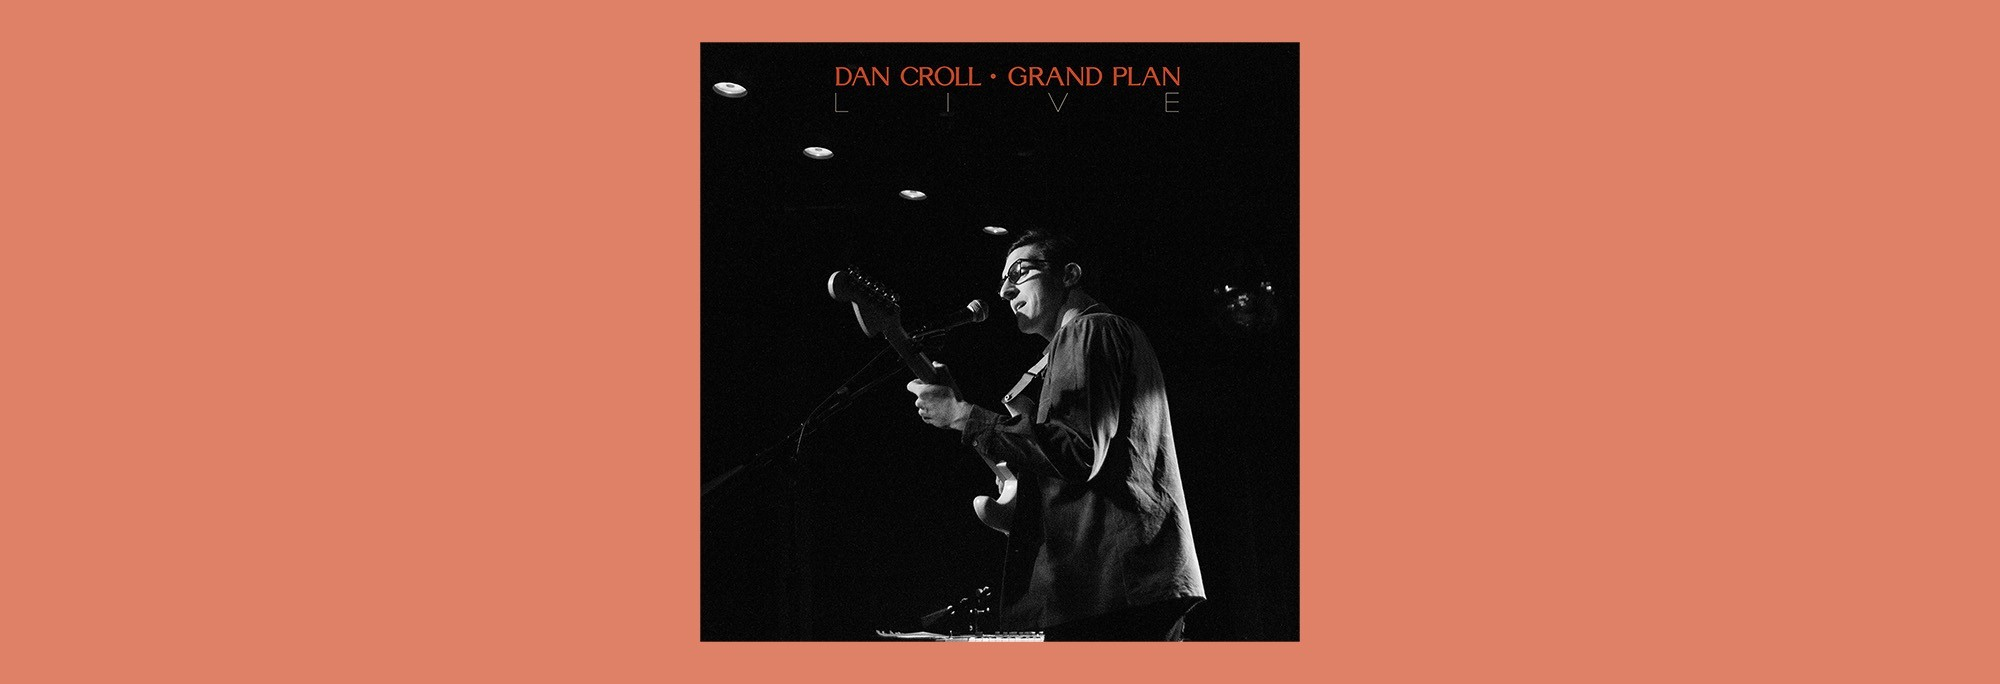 Dan Croll - Grand Plan (Live)